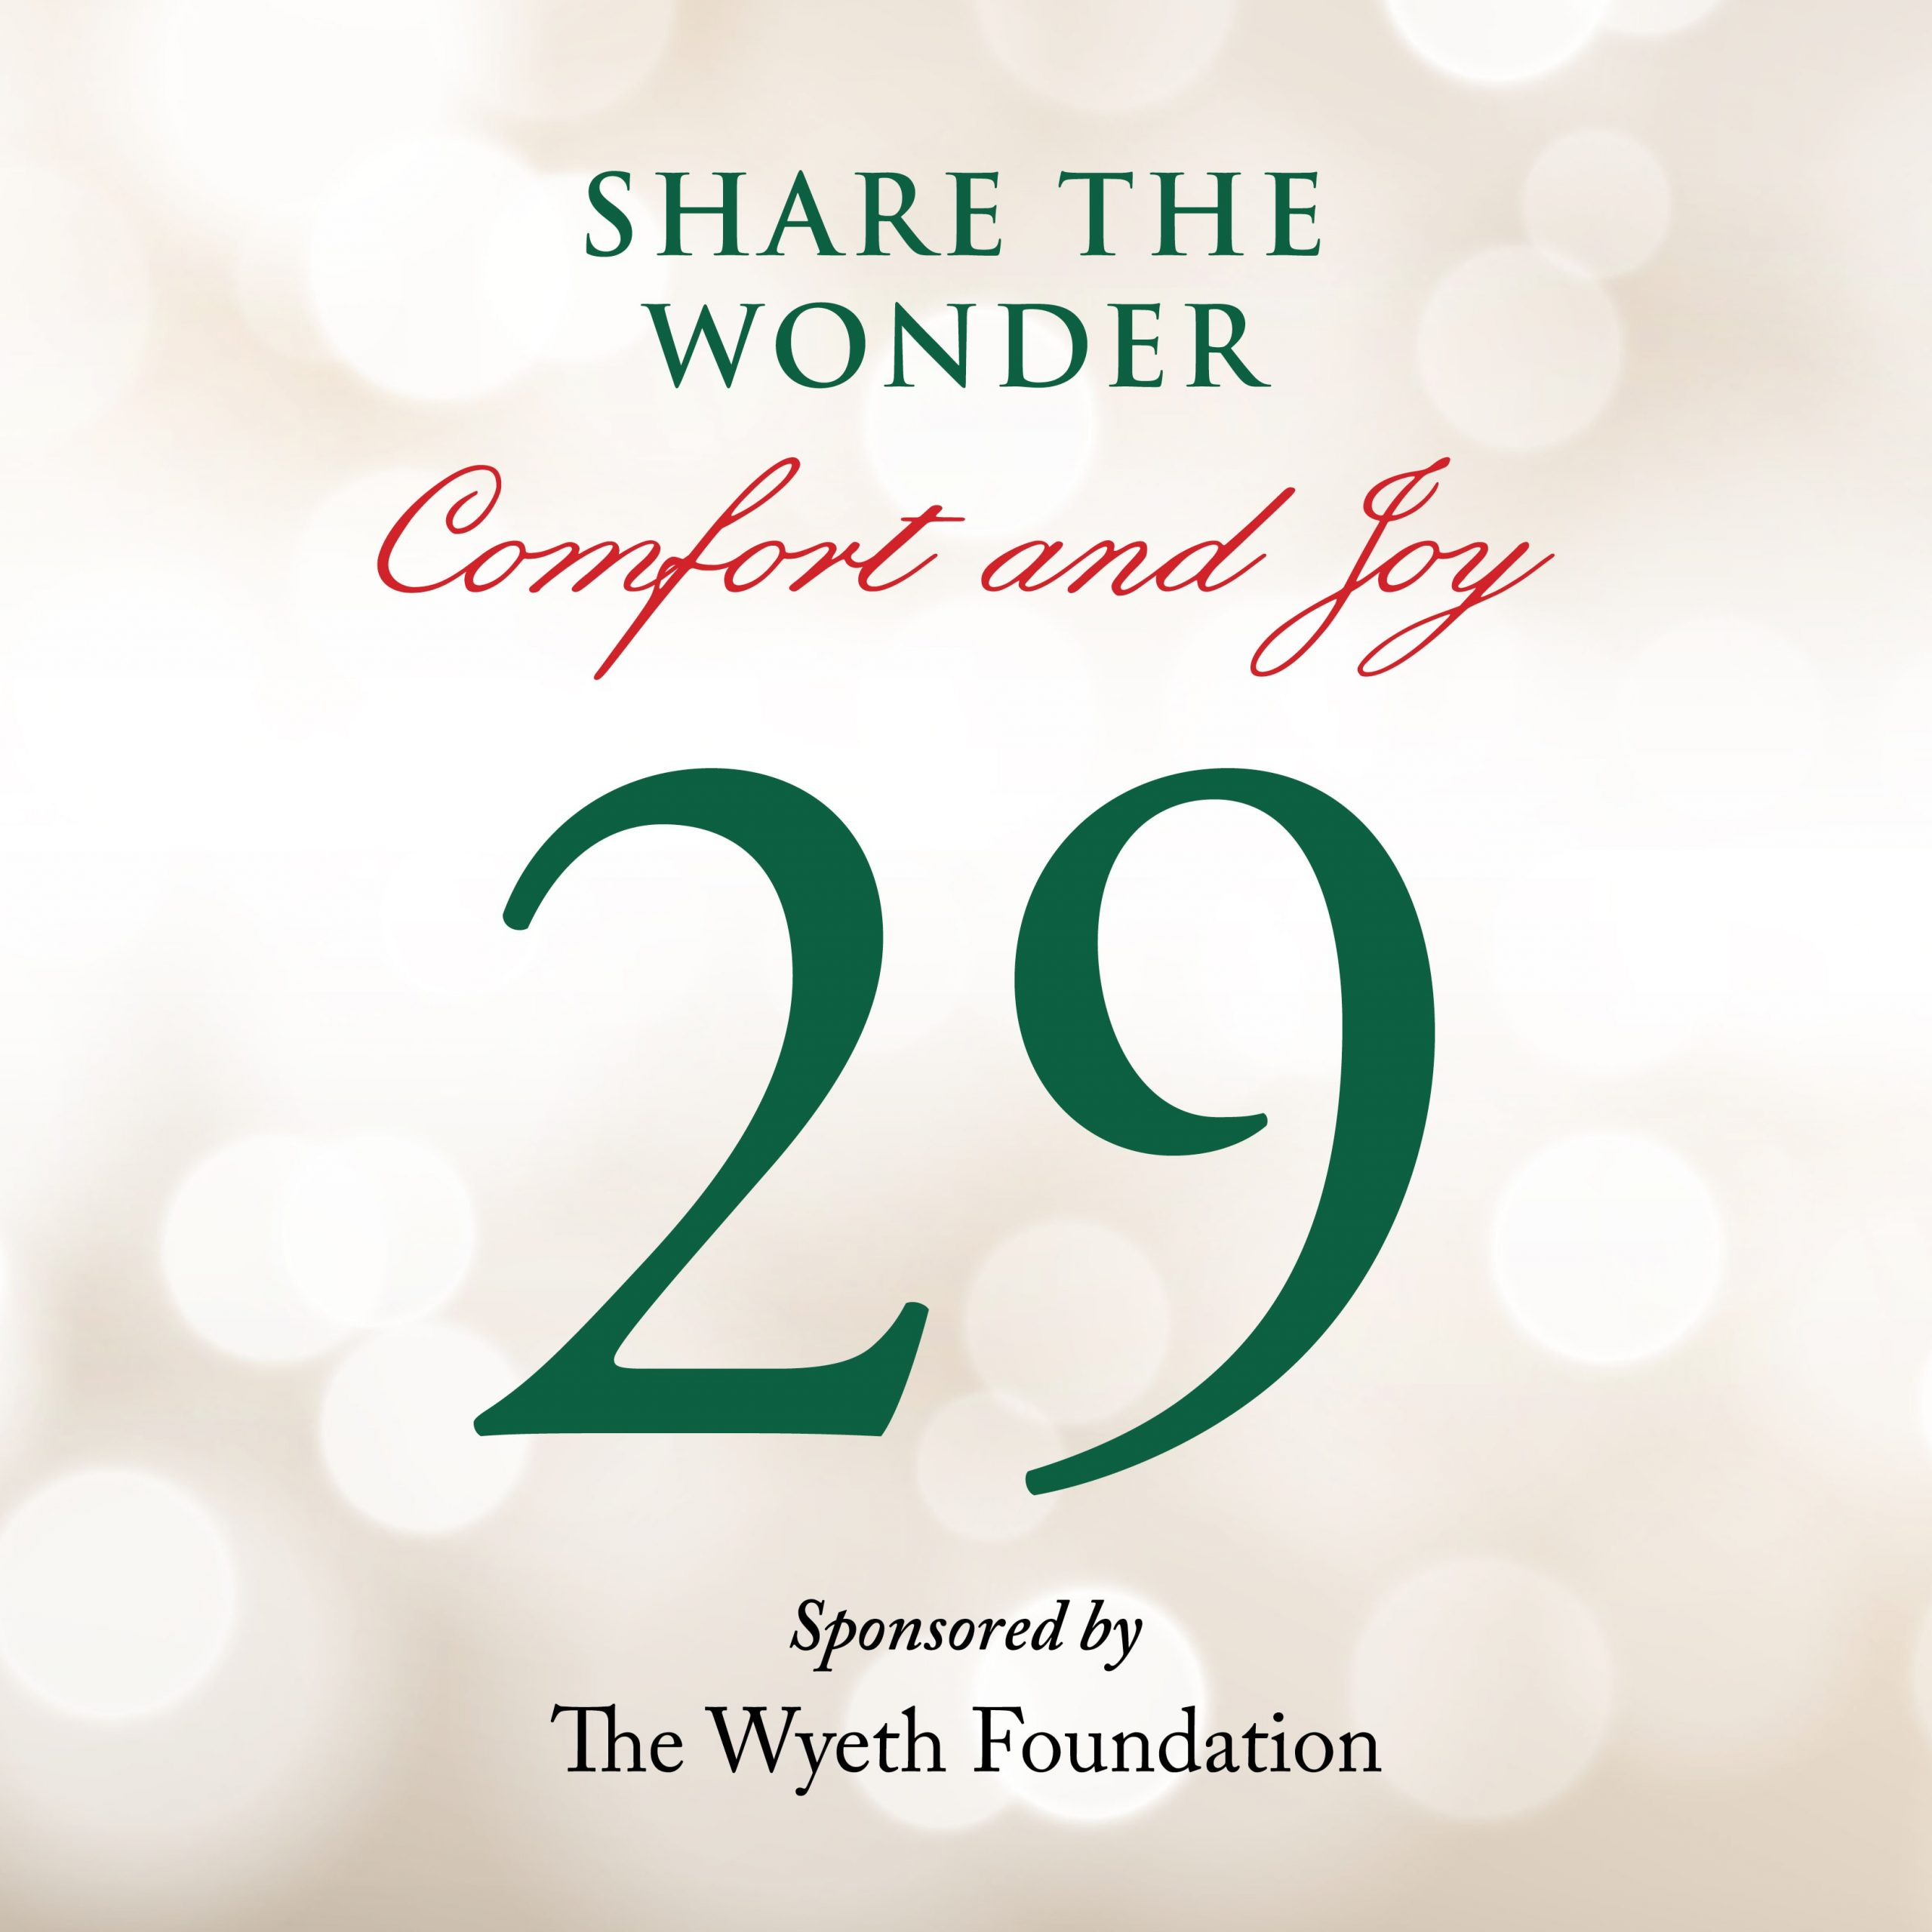 Day 29 of Share the Wonder: December 26